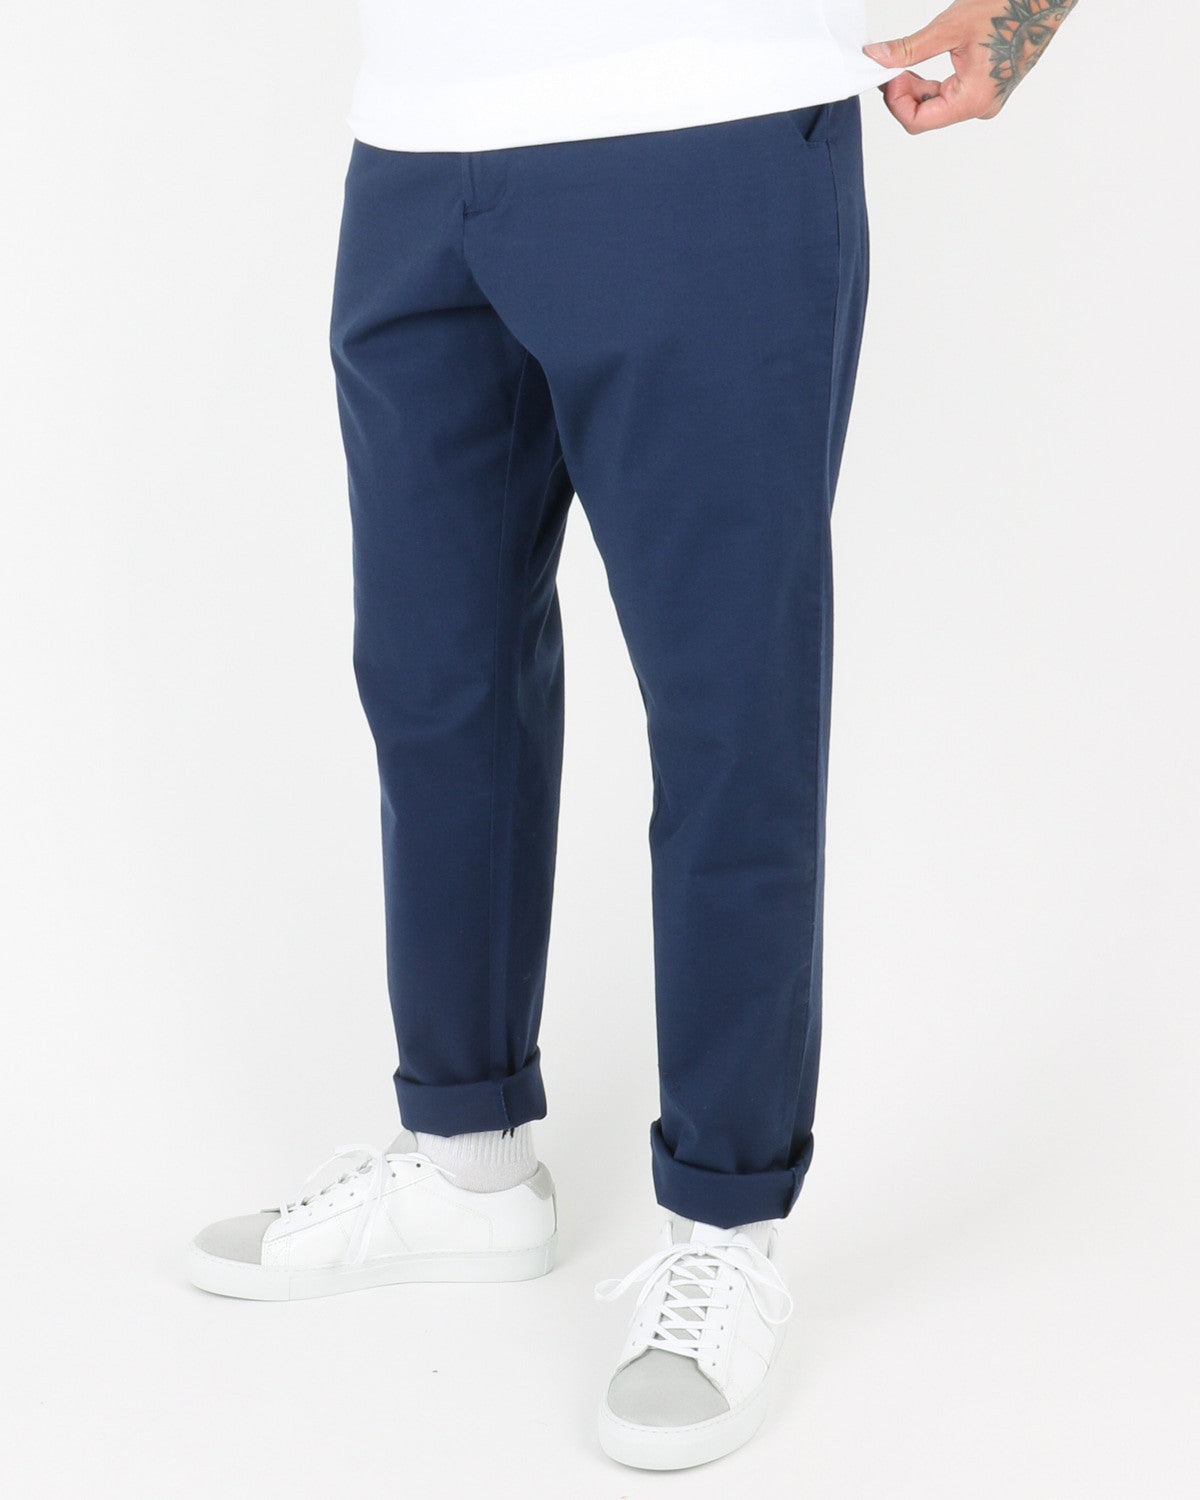 journal clothing_sea drape pants_navy_view_2_2